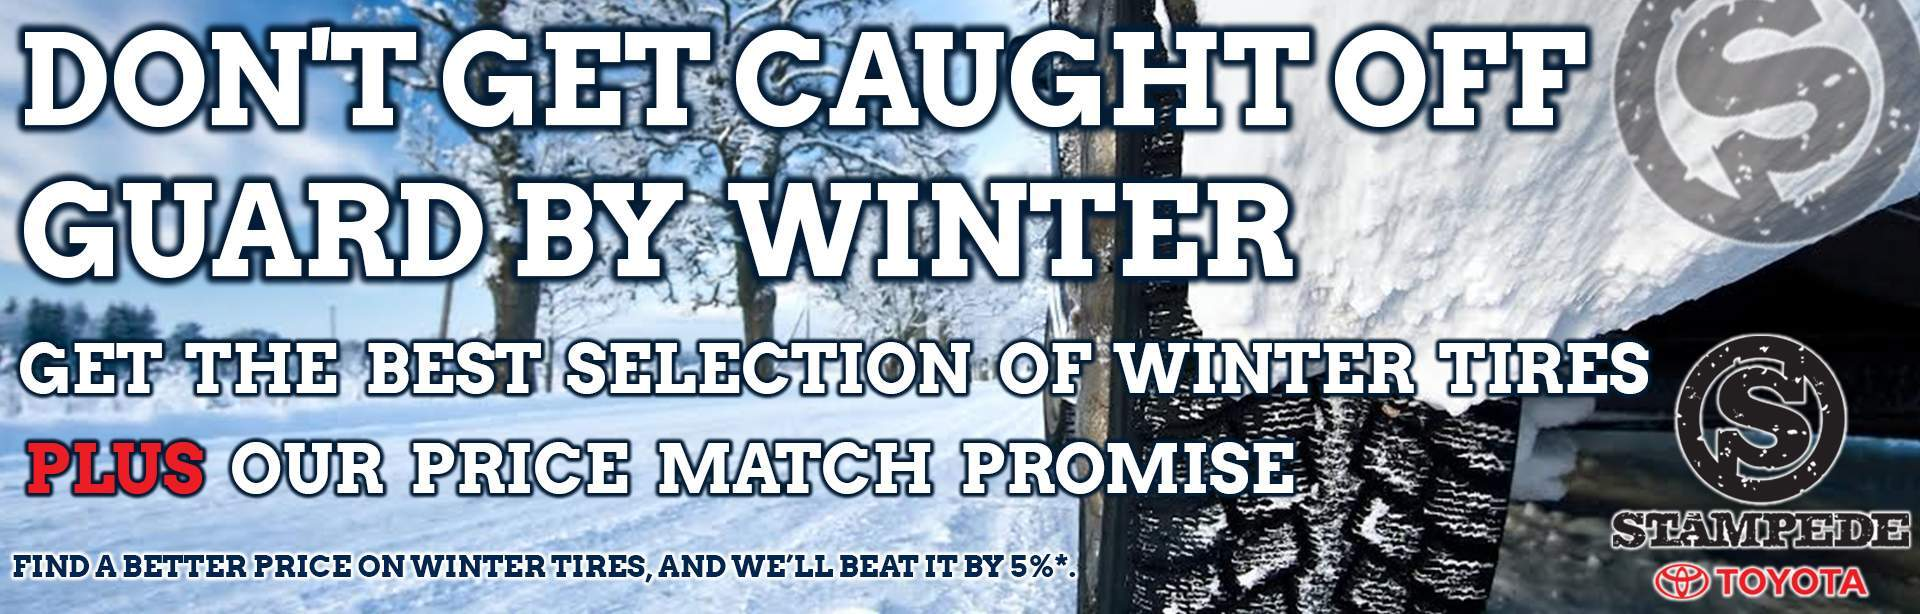 Winter Tire Price Match Promise